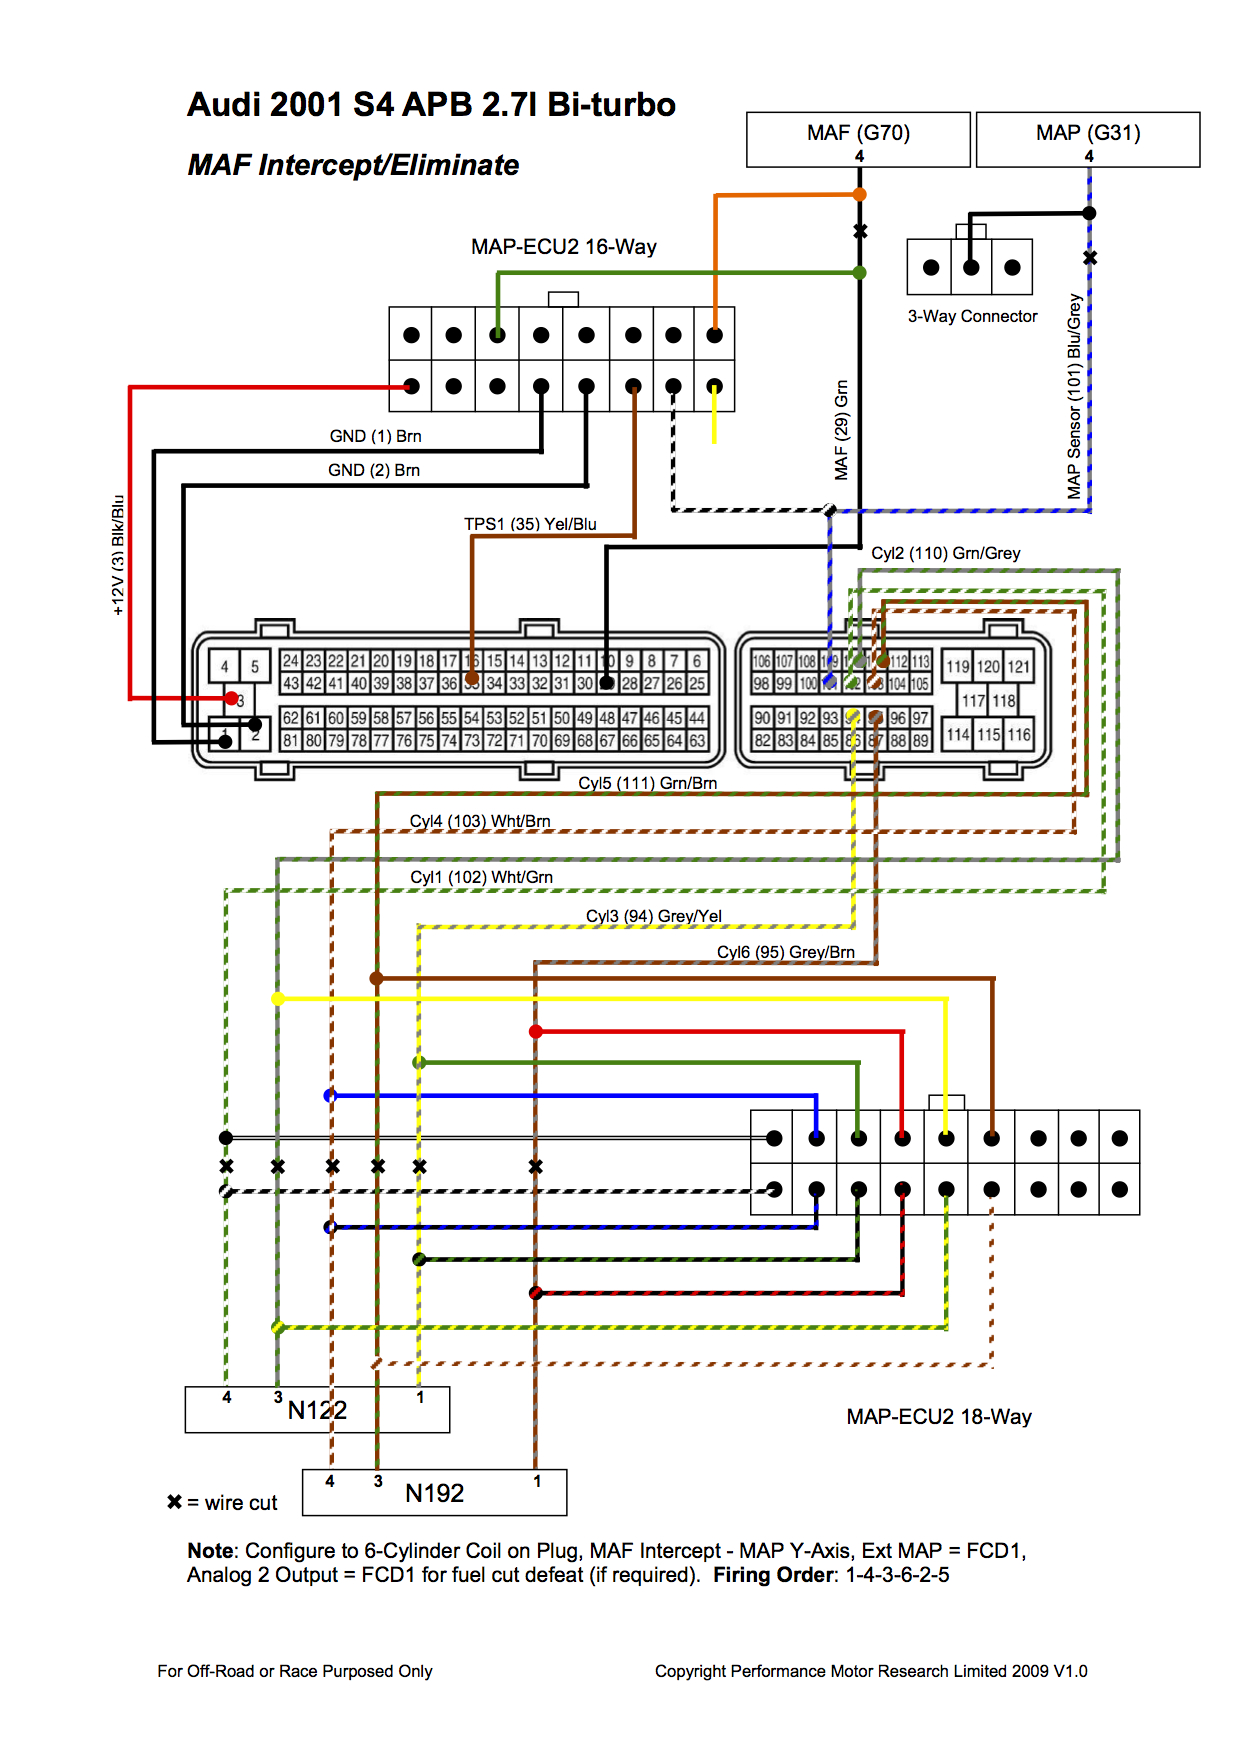 Audi S4 20011 ecu wiring diagram paccar ecu wiring diagram \u2022 wiring diagrams j ford focus 2001 wiring diagram pdf at suagrazia.org